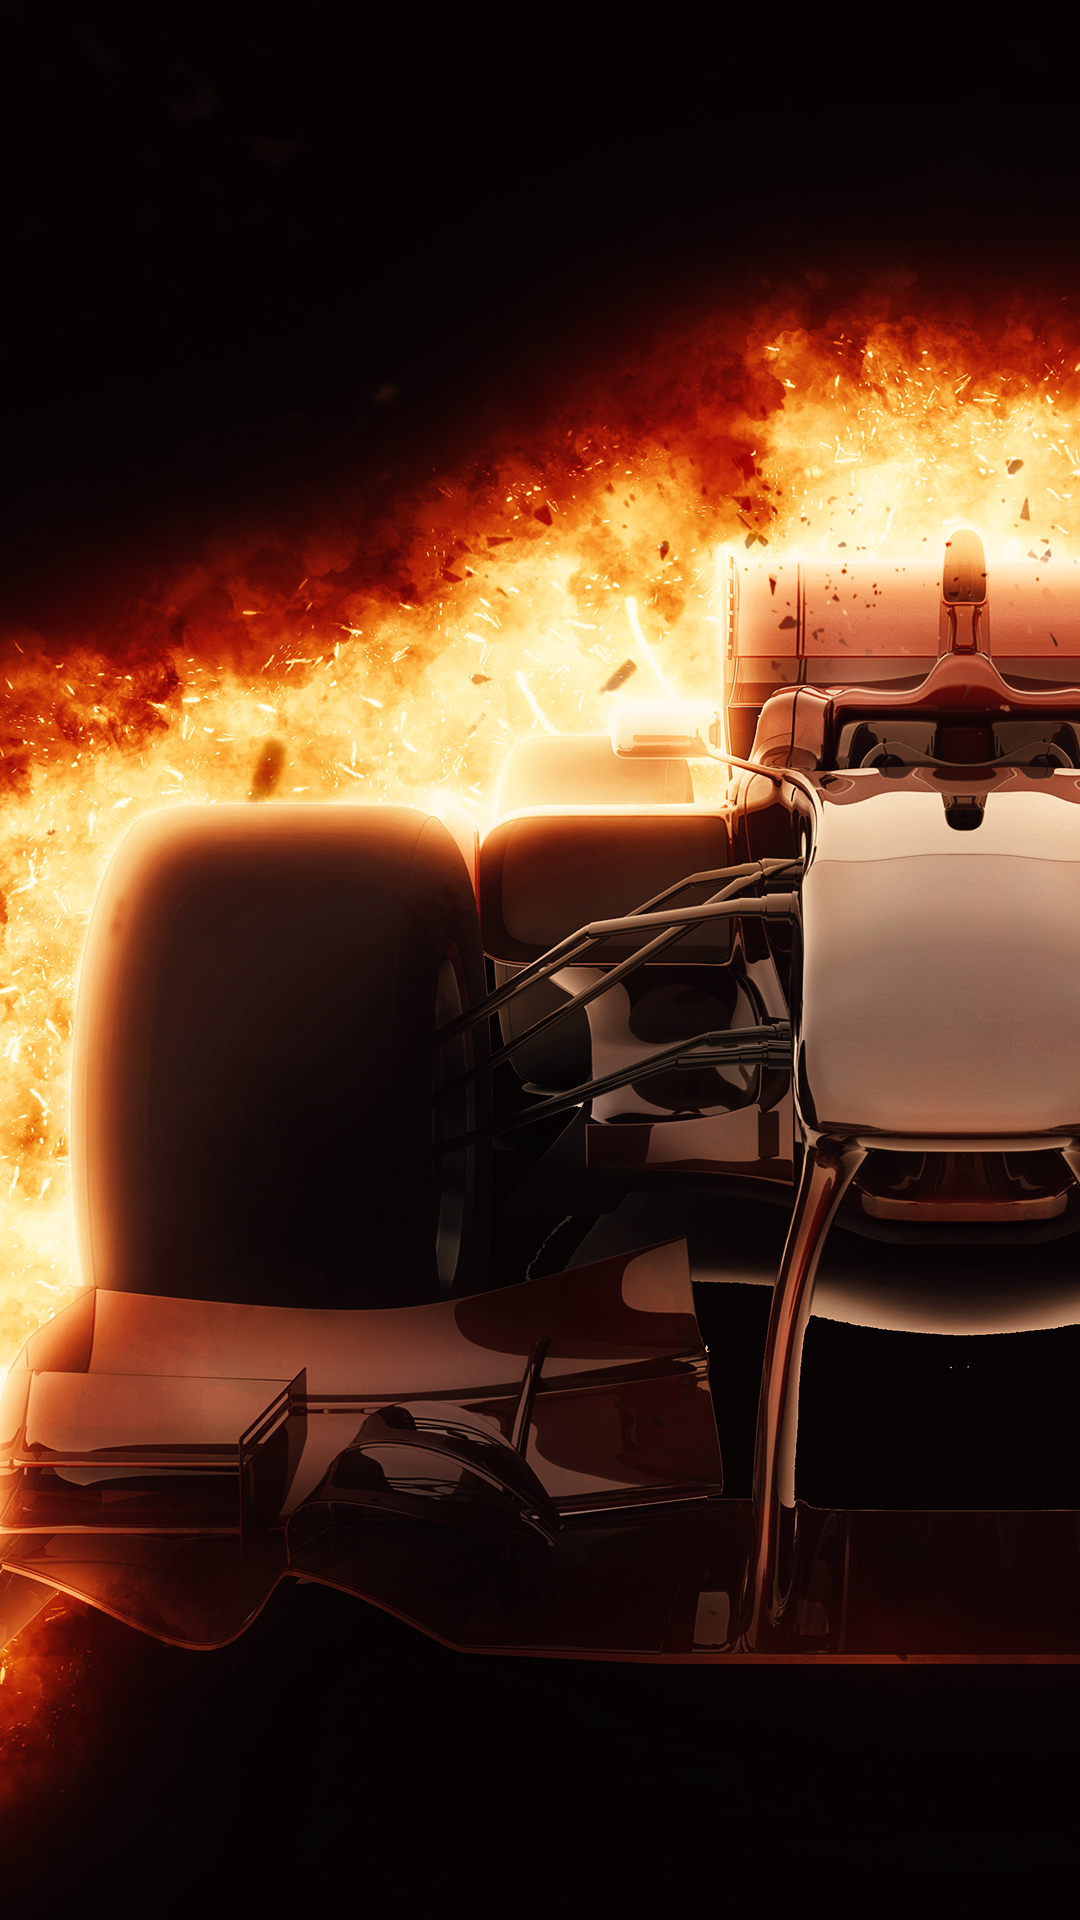 Burning F1 Car 1080 X 1920 HD Phone Wallpaper